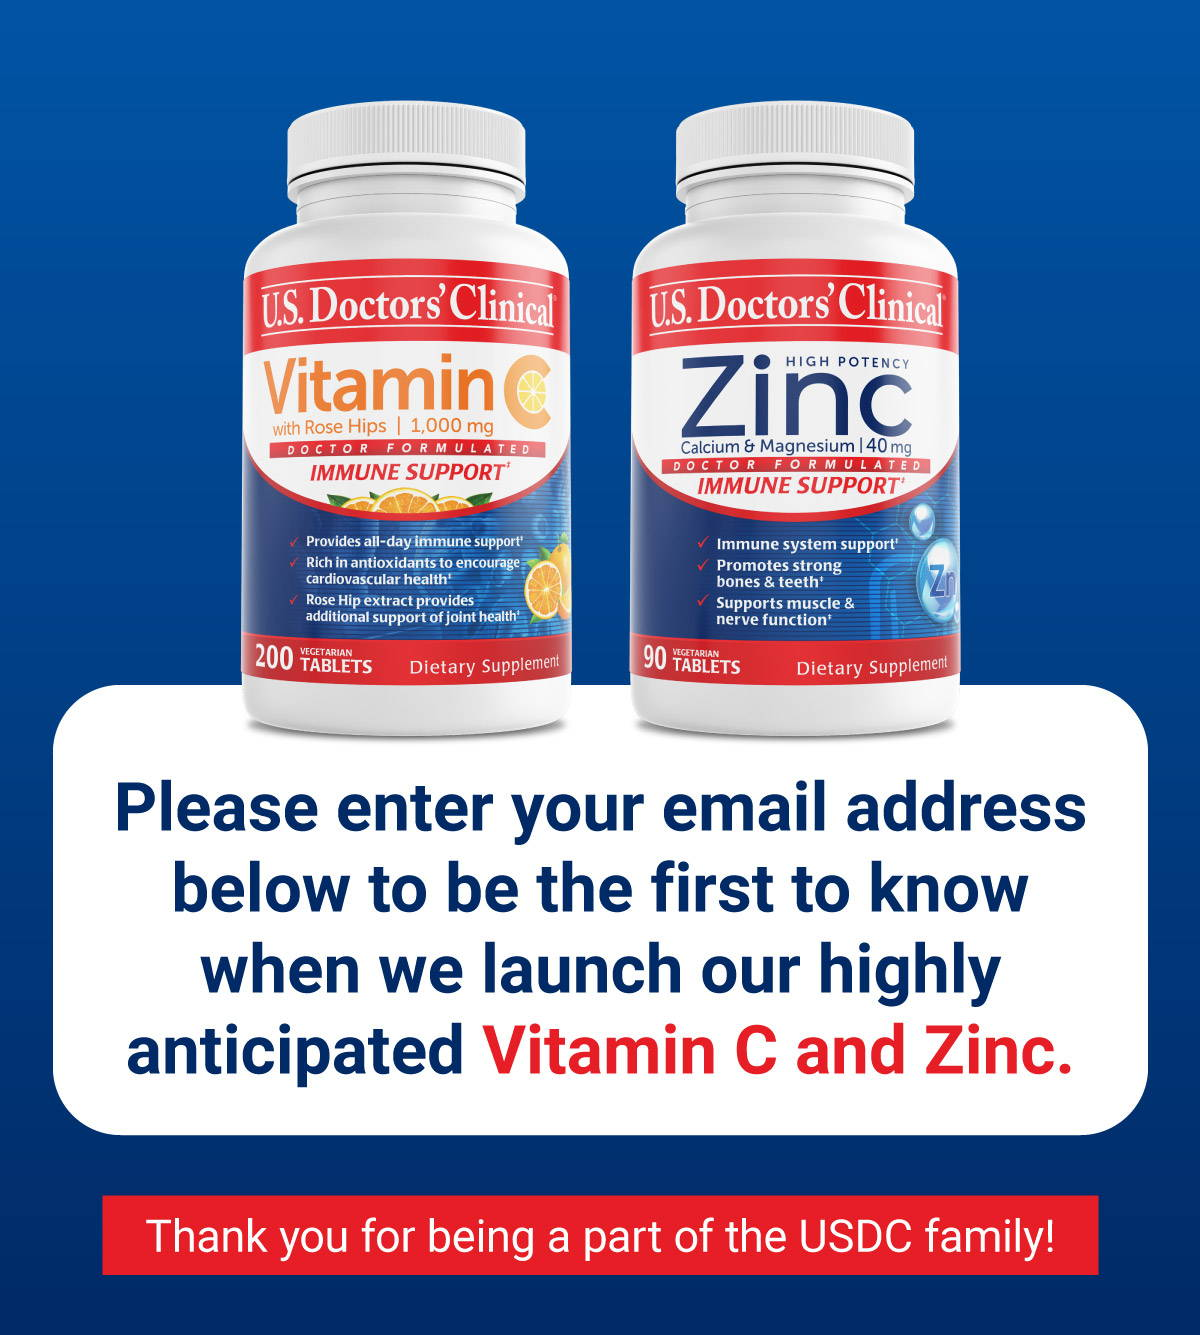 Please enter your email address below to be the first to know when we launch our highly anticipated Vitamin C and Zinc.